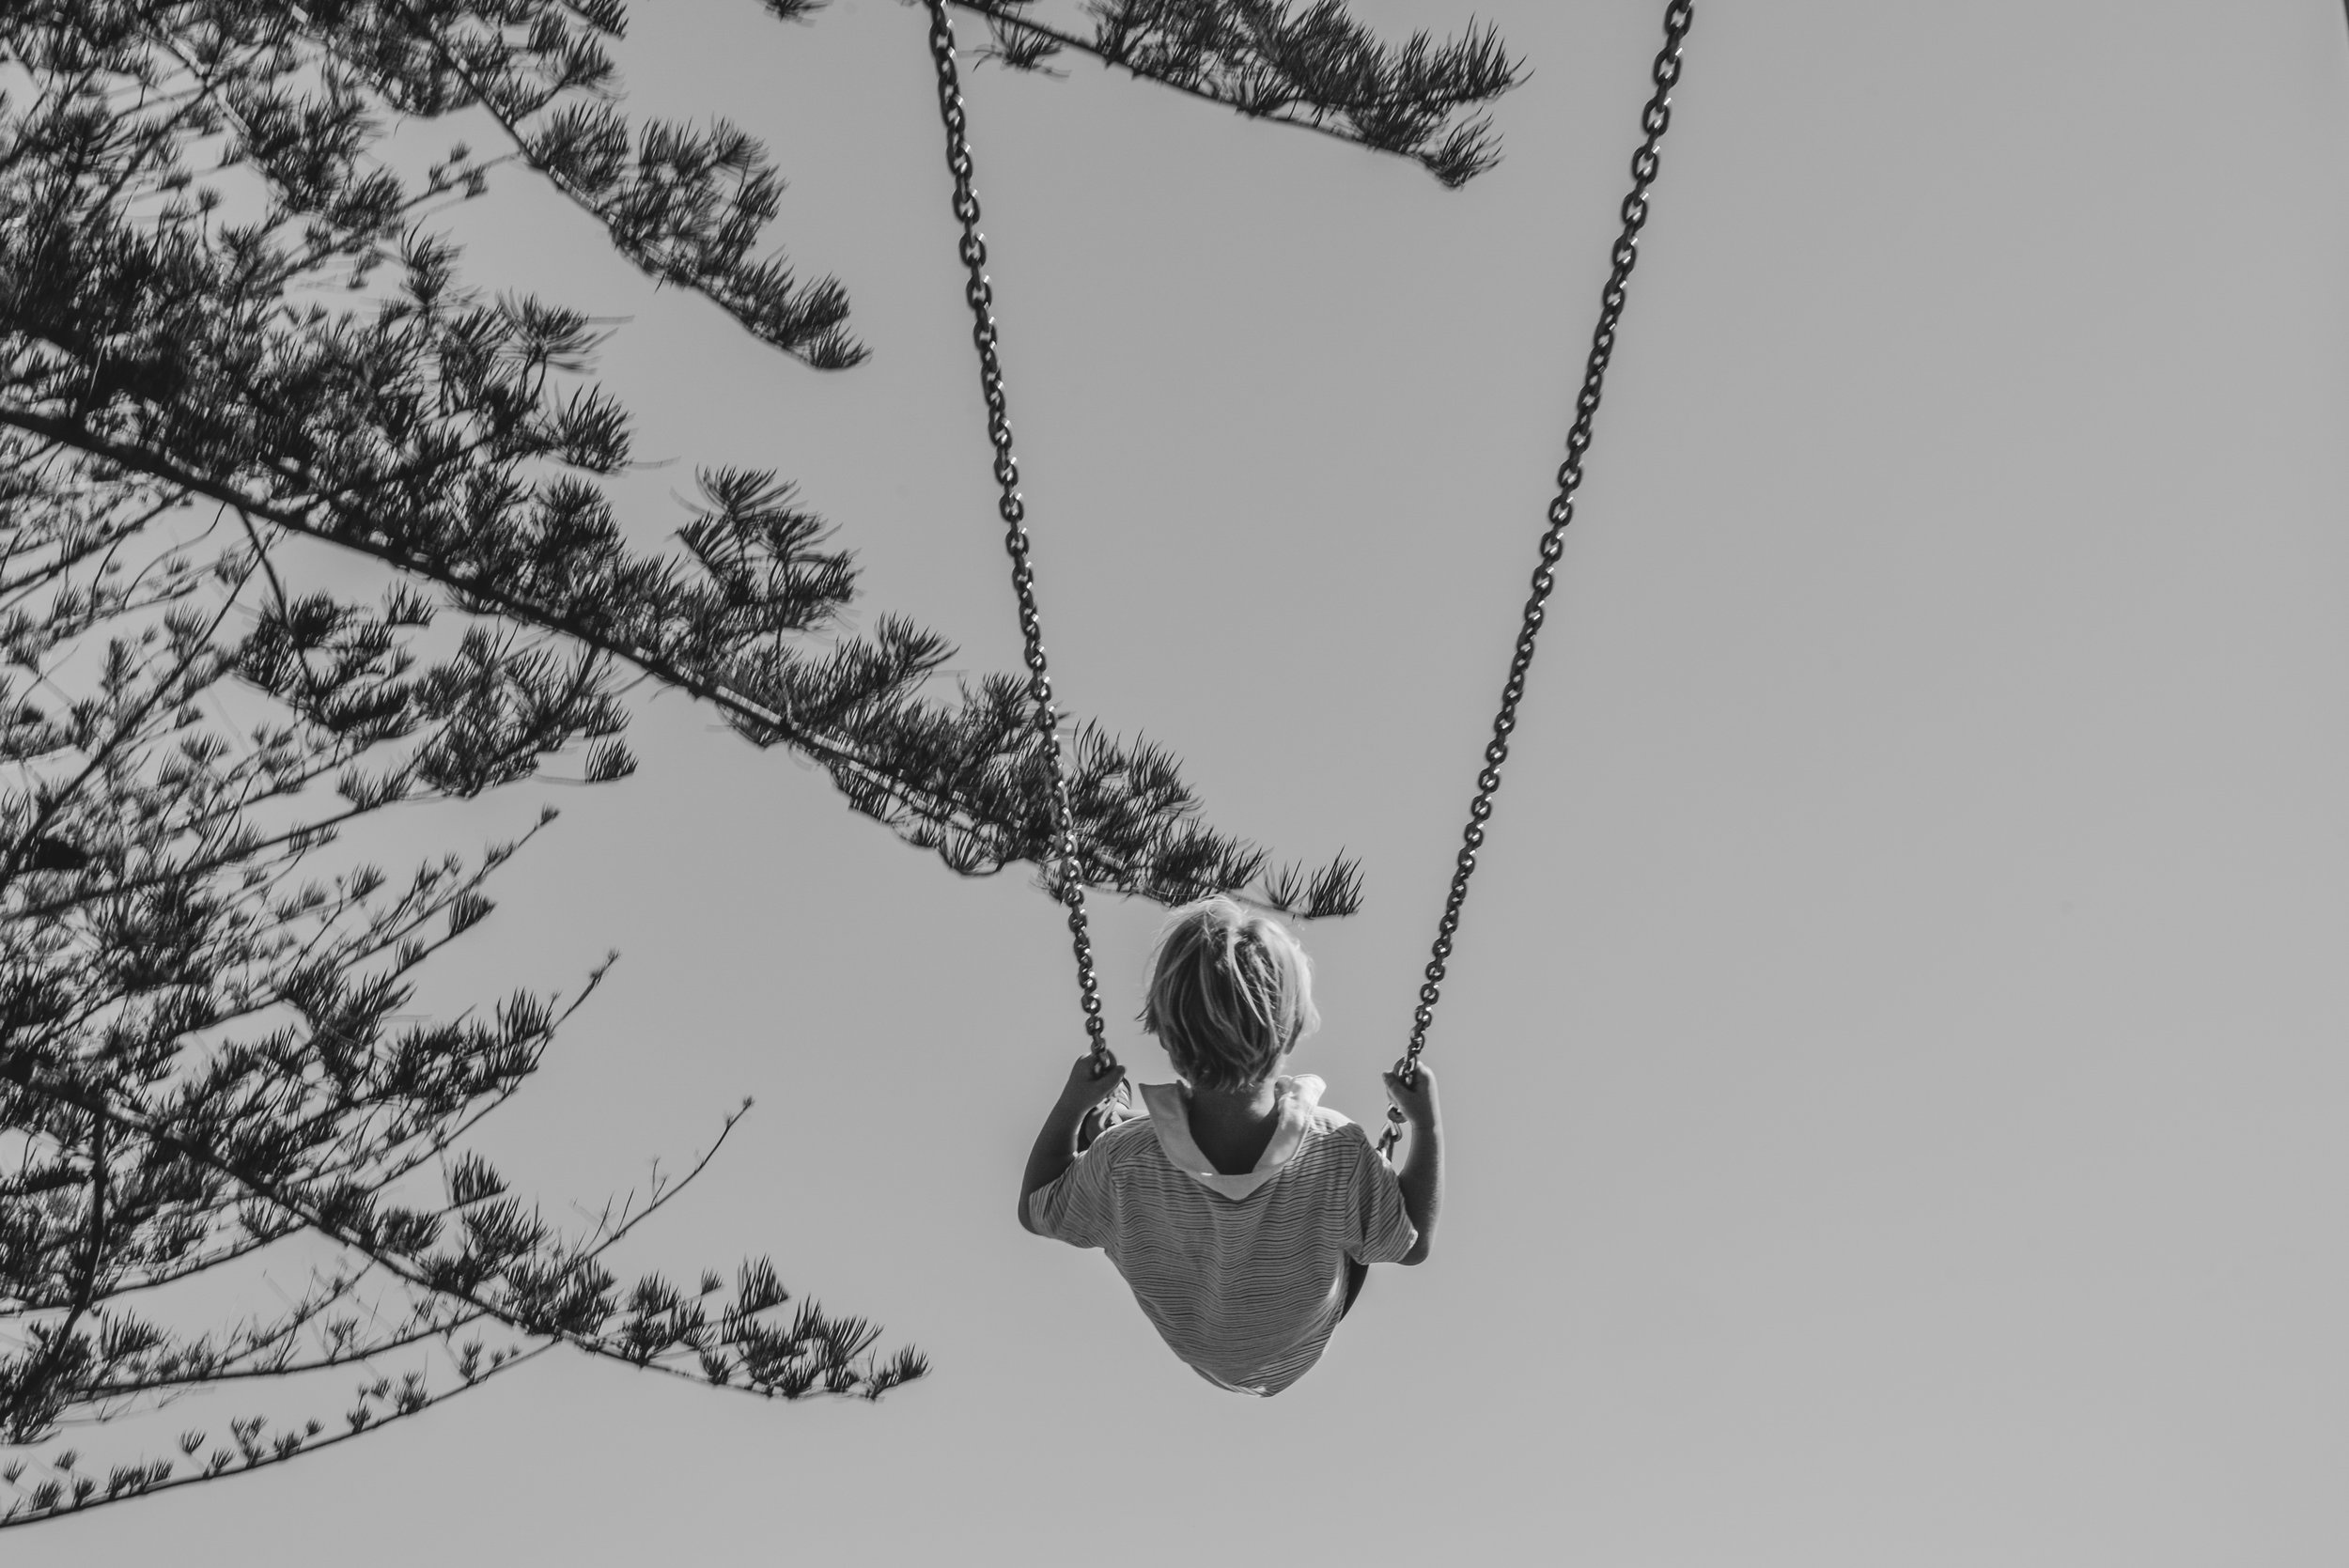 Tater swinging at Apex Park in Byron Bay